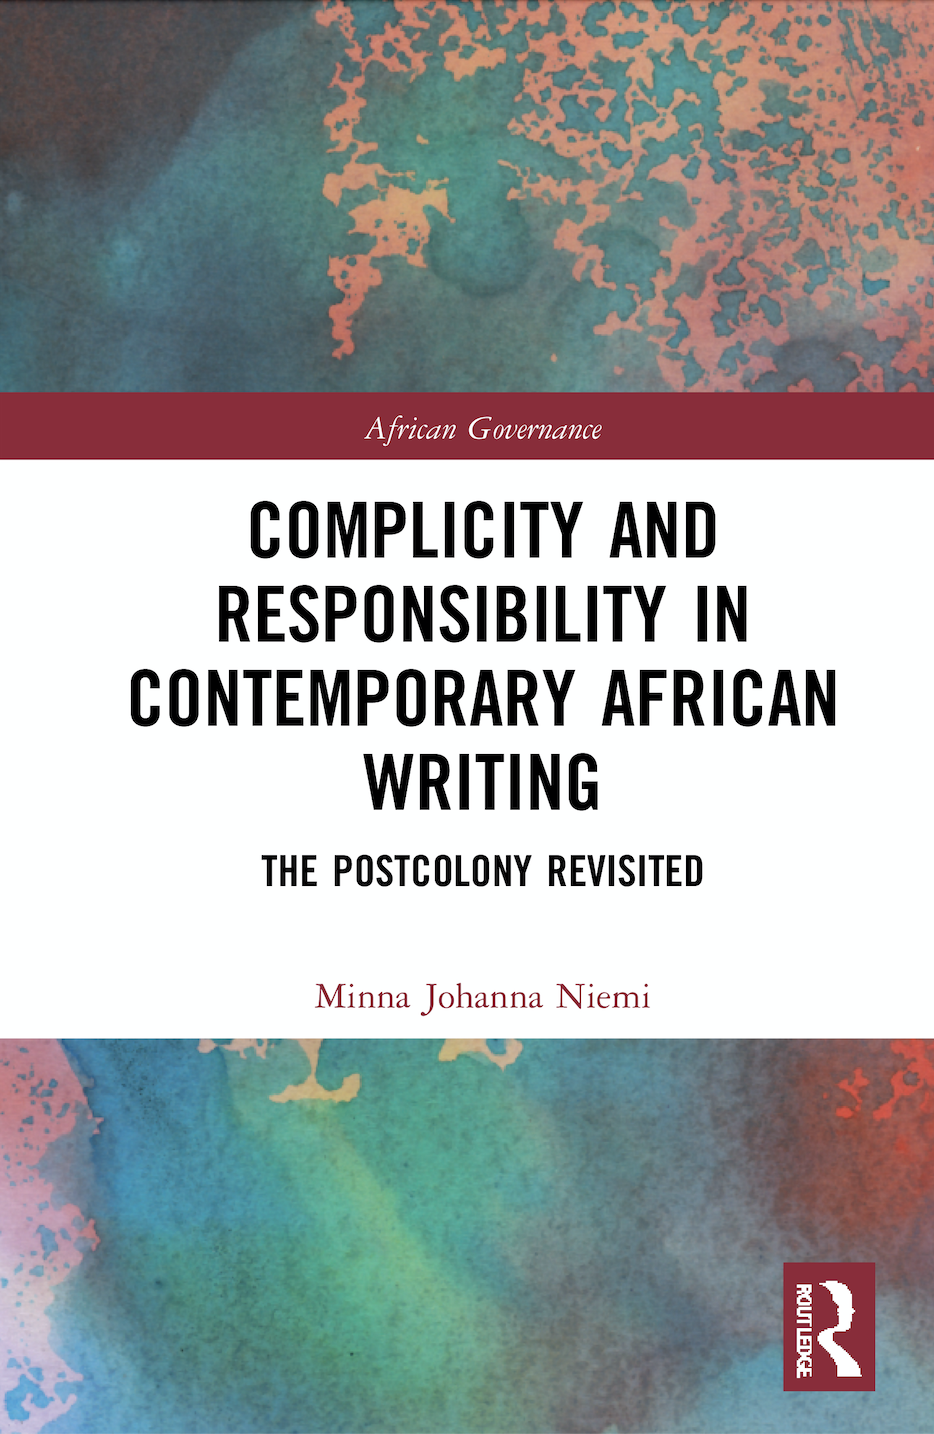 M. J. Niemi. Complicity and Responsibility in Contemporary African Writing. The Postcolony Revisited